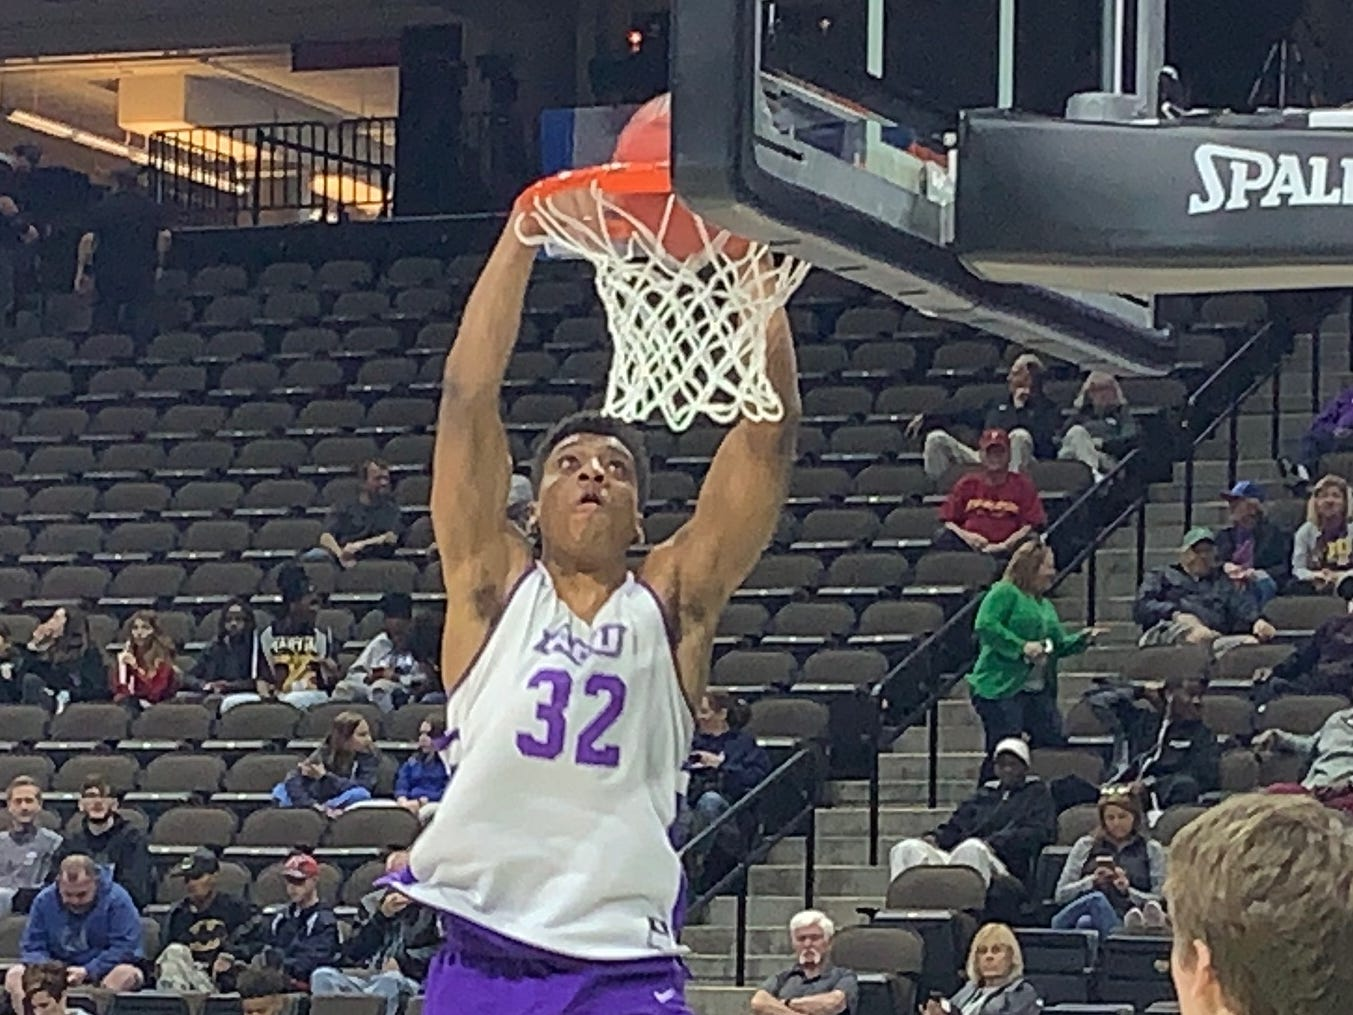 Joe Pleasant (32) dunks during Abilene Christian's practice at VyStar Veterans Memorial Arena in Jacksonville on Wednesday, March 20. ACU plays Kentucky in the NCAA Tournament first round on Thursday night.